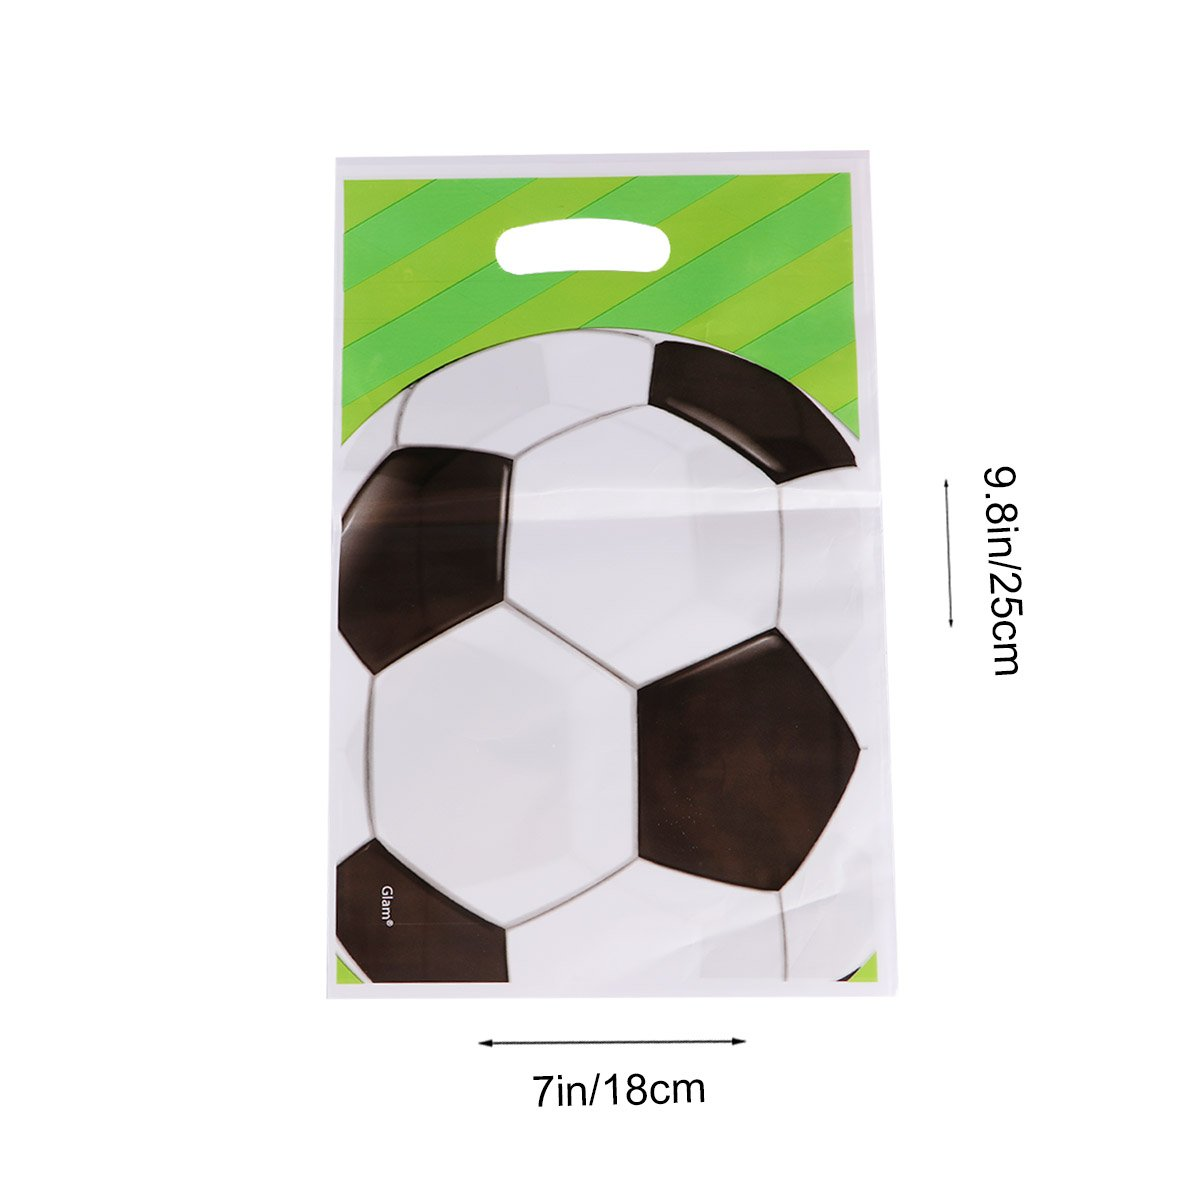 TOYMYTOY 20pcs Soccer Balls Party Favor Bags Candy Gift Bag Treat Bag Party Supplies for Birthday Kids Party